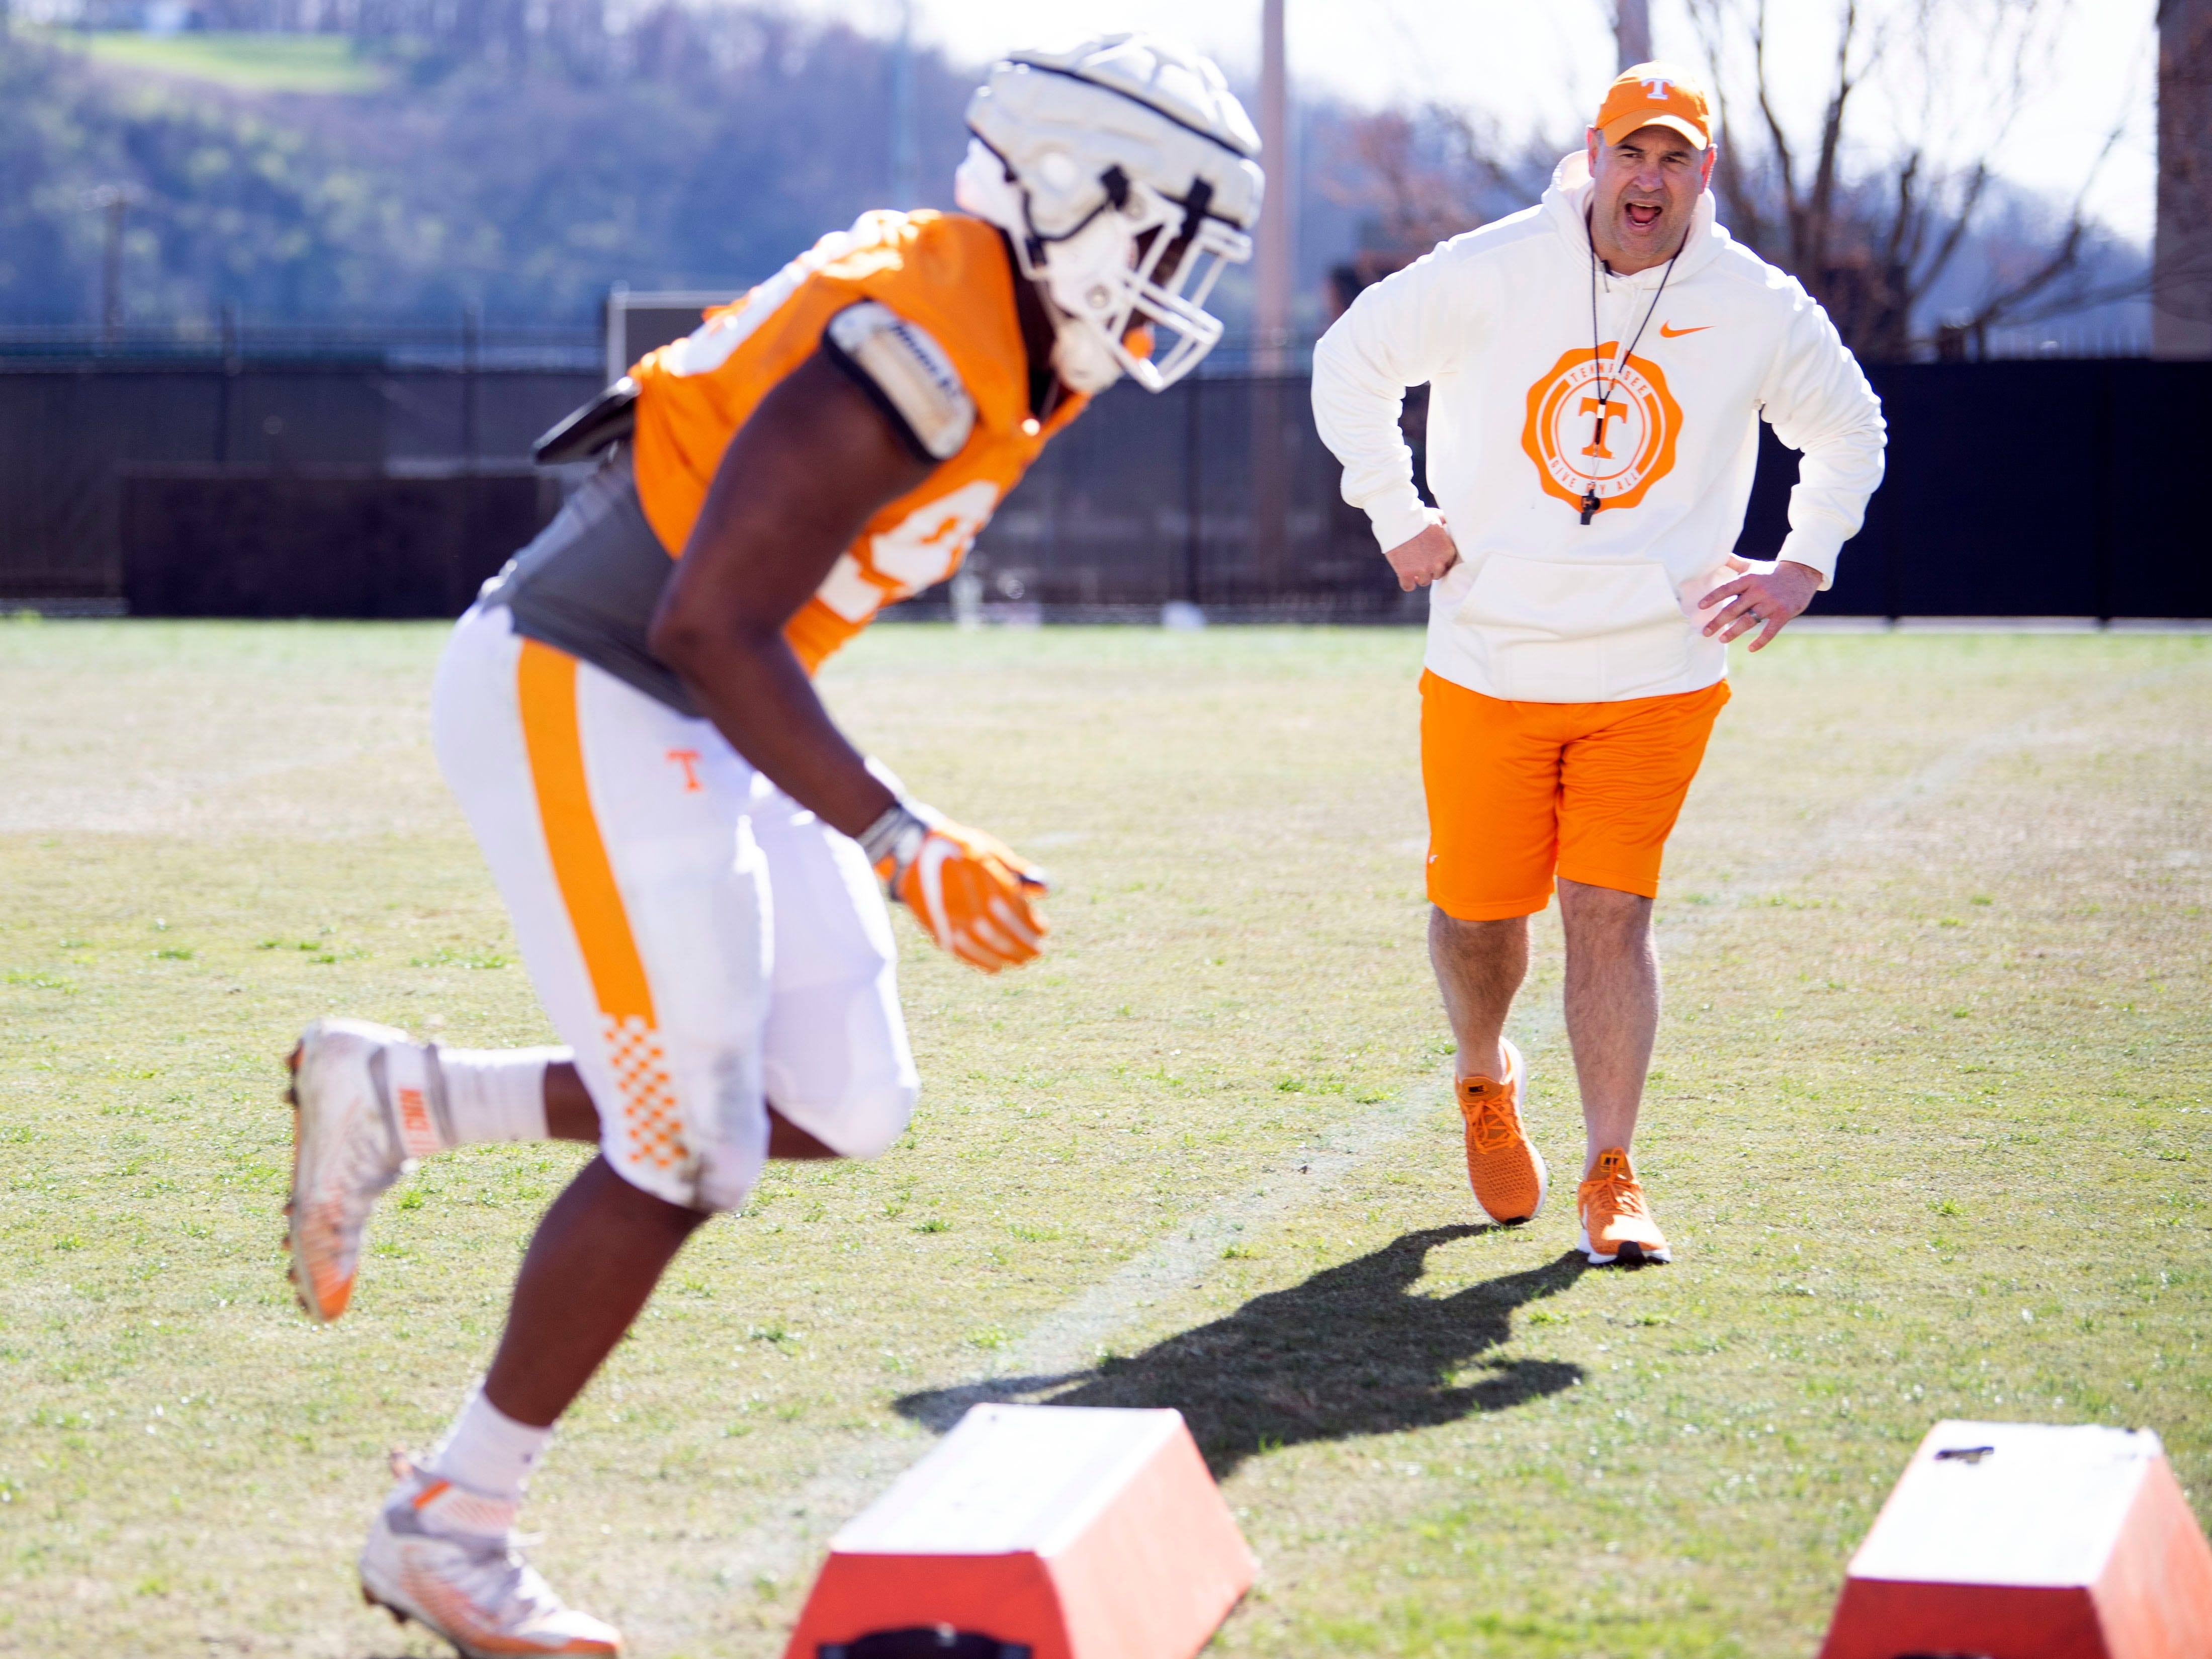 Tennessee football coach Jeremy Pruitt with the defensive linemen practice on Friday, March 15, 2019.